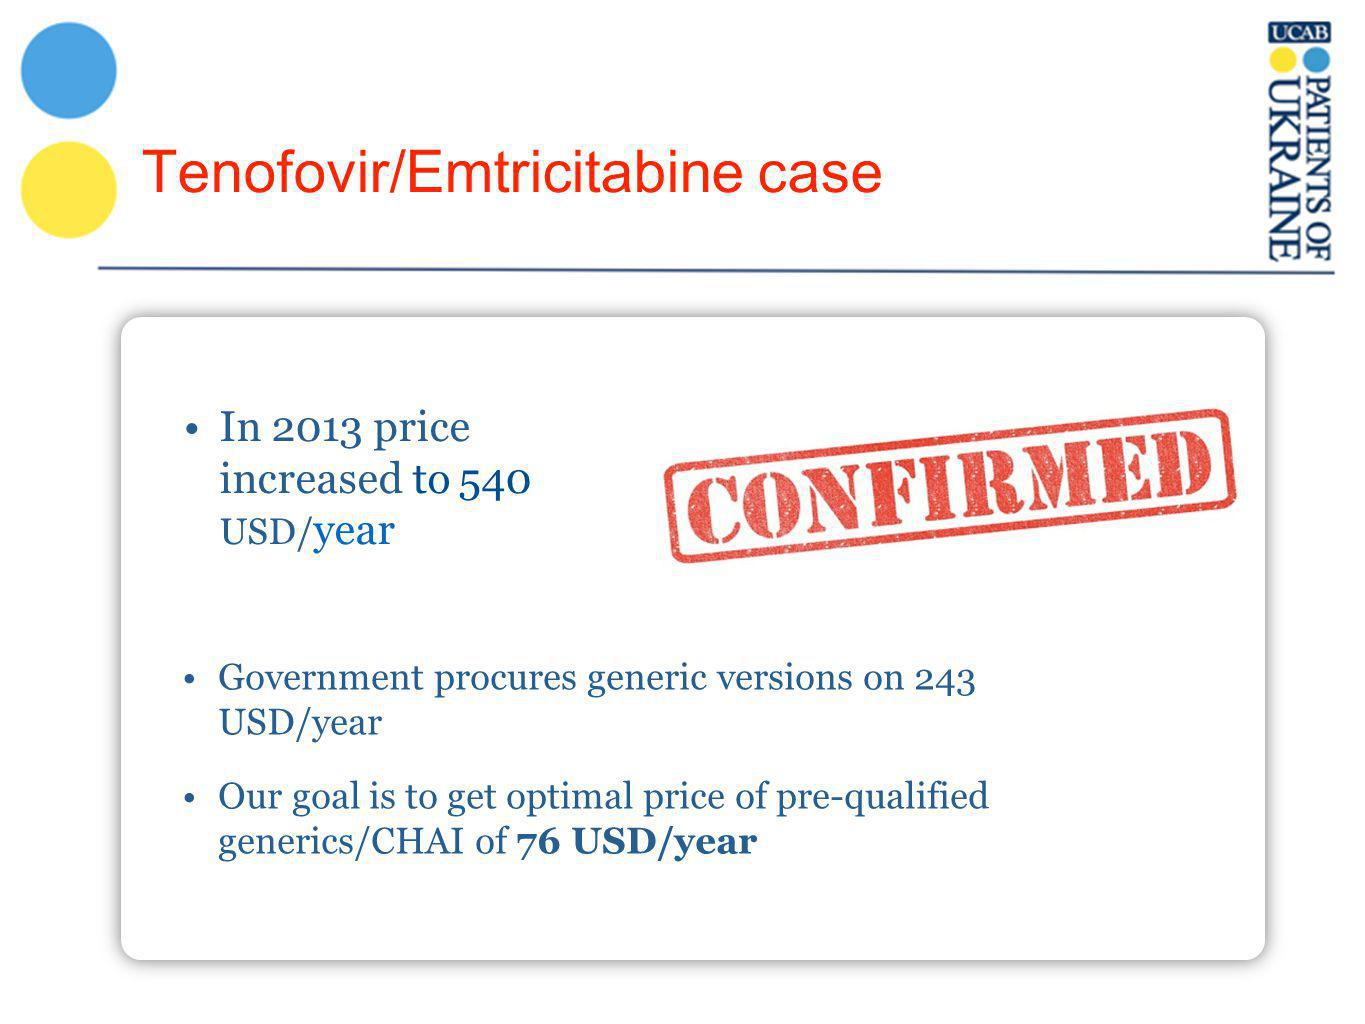 Tenofovir/Emtricitabine case In 2013 price increased to 540 USD/ year Government procures generic versions on 243 USD/year Our goal is to get optimal price of pre-qualified generics/CHAI of 76 USD/year